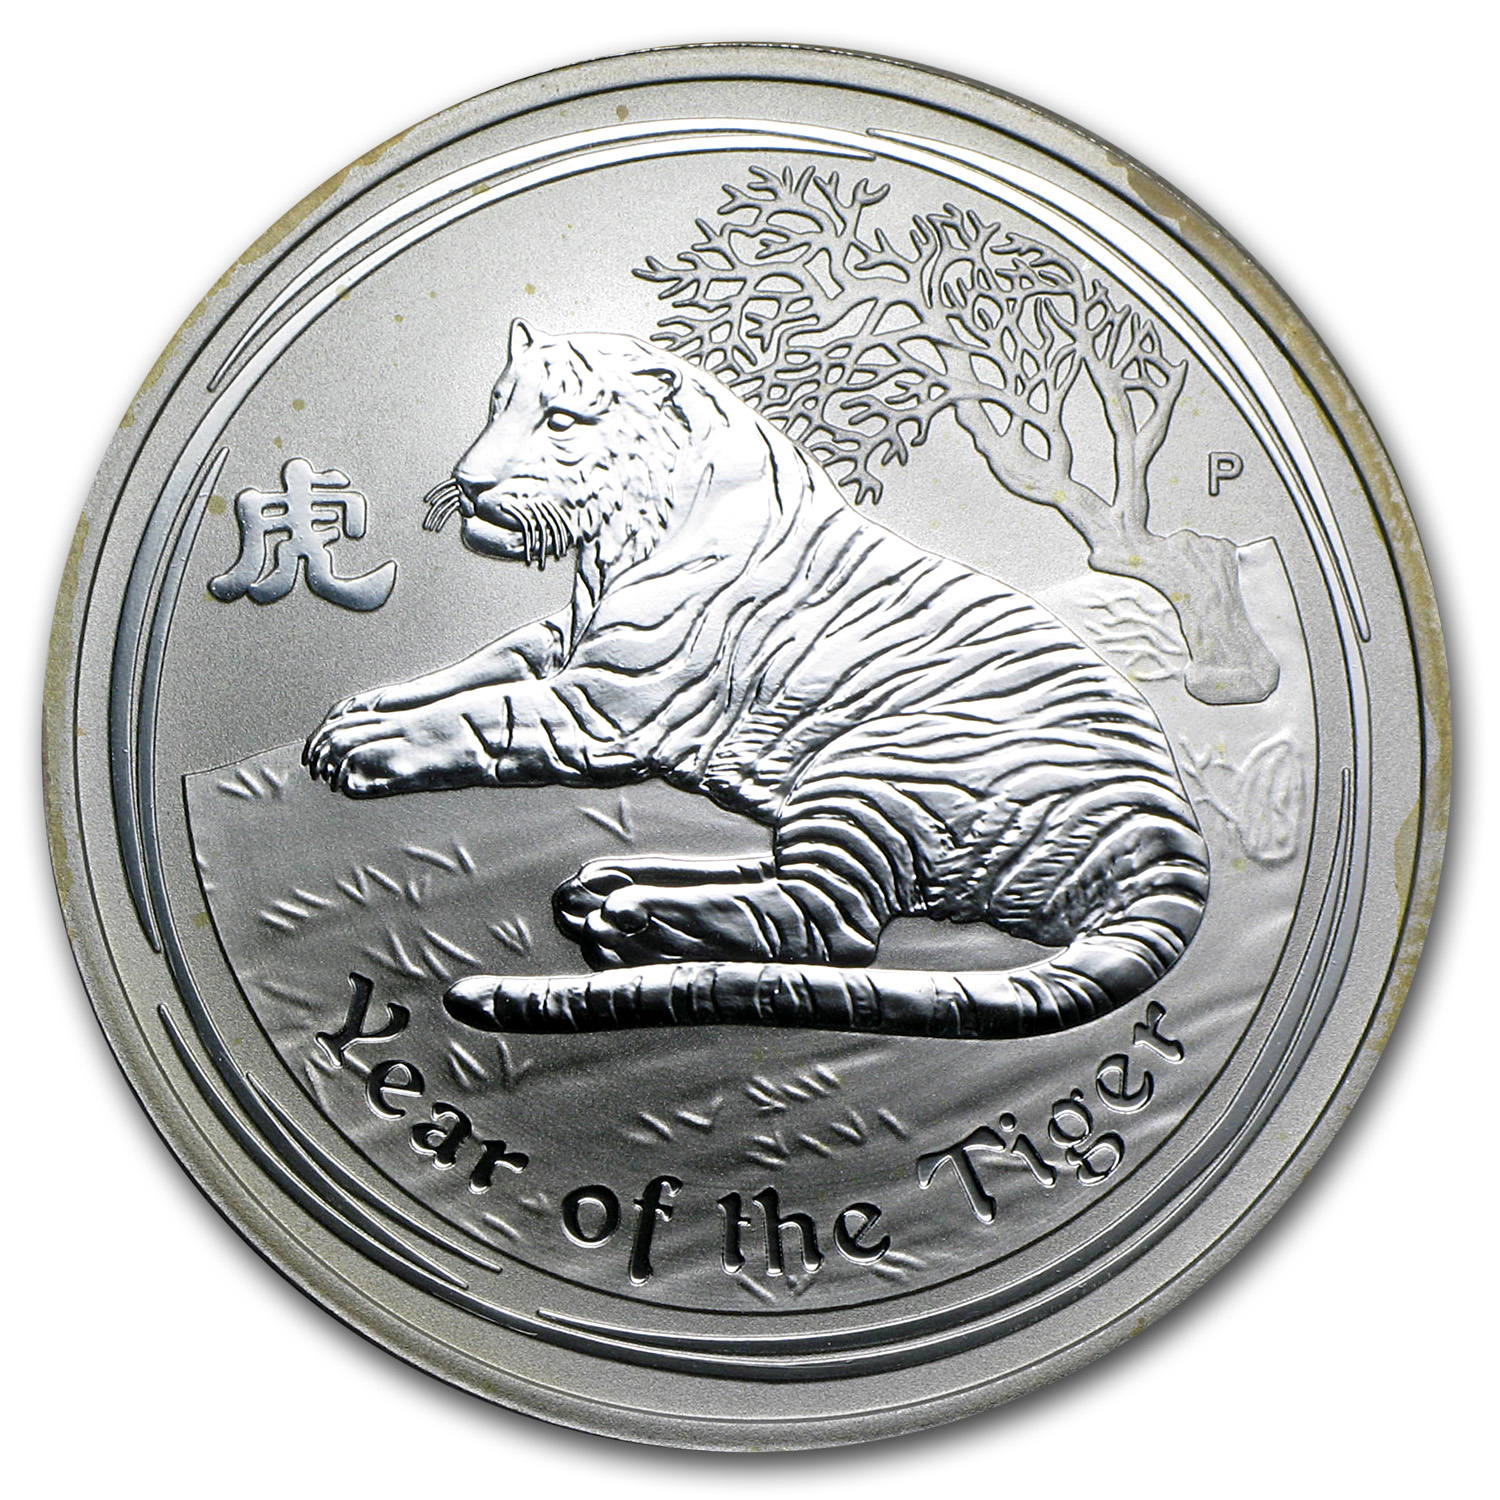 2010 1 oz Silver Australian Year of the Tiger Coin (Abrasions)